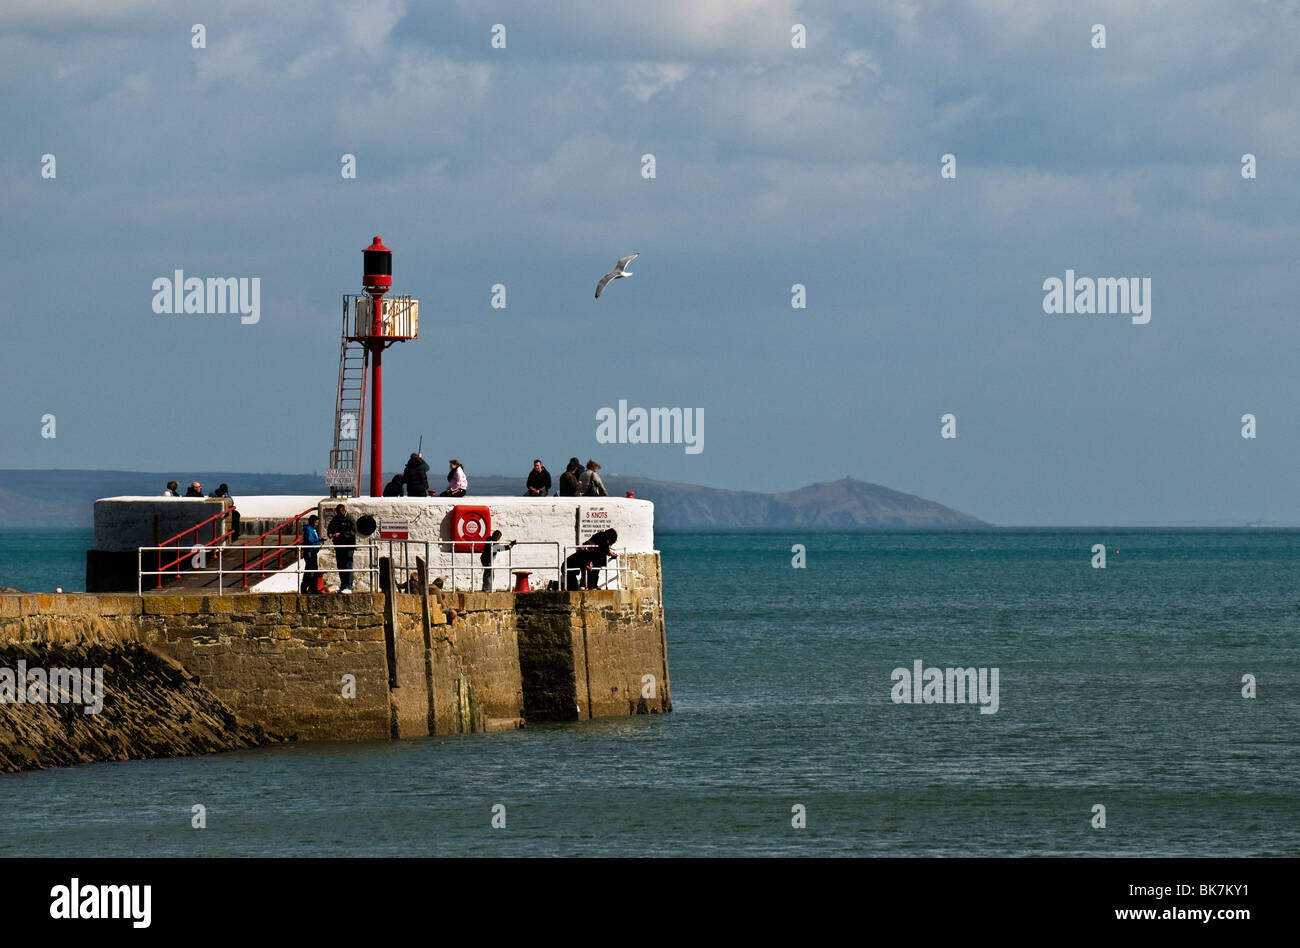 People fishing on the Banjo Pier in Looe in Cornwall.  Photo by Gordon Scammell - Stock Image